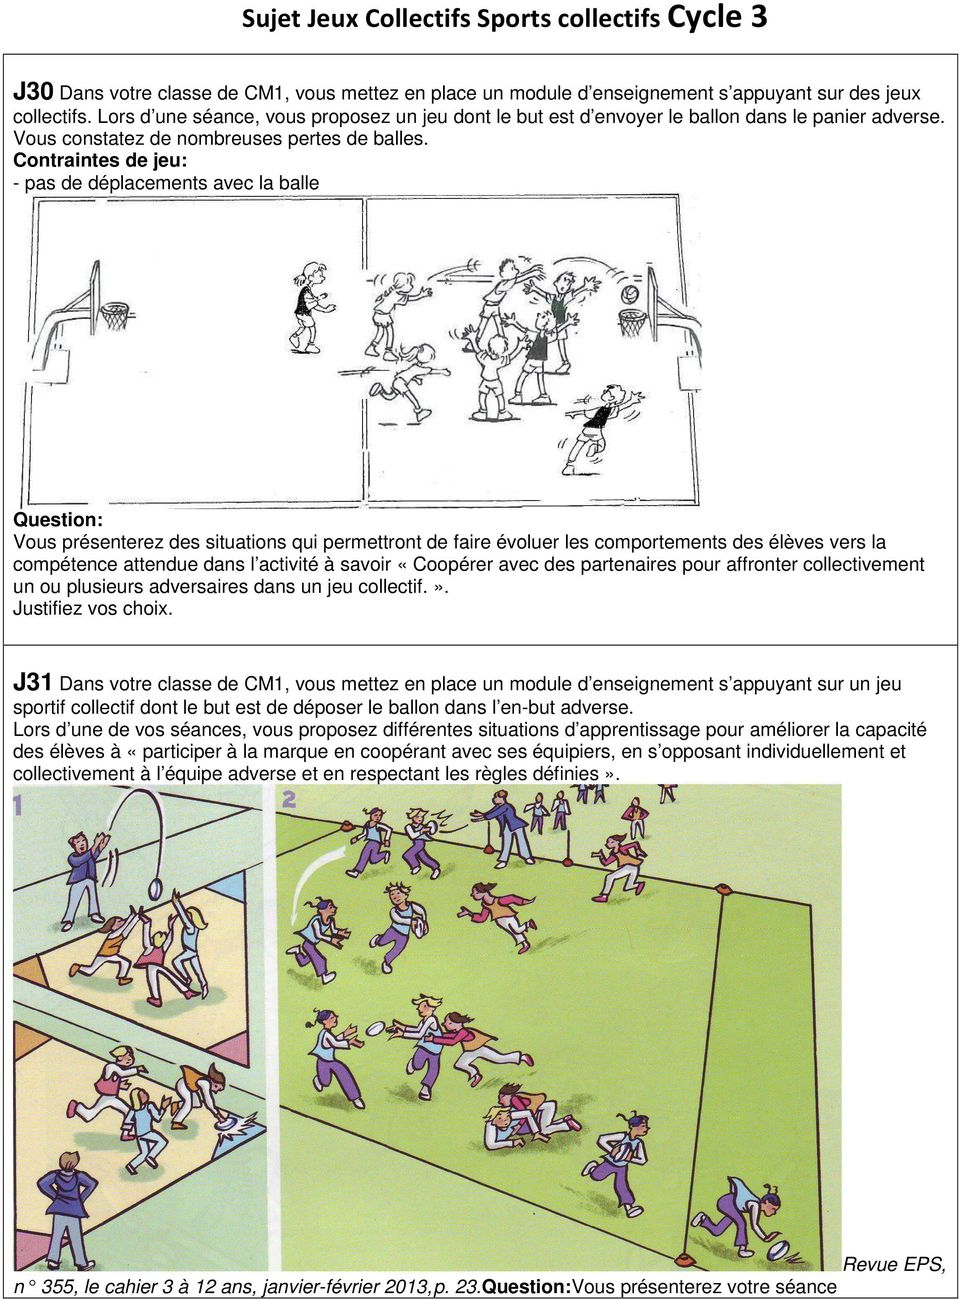 Sujet Jeux Collectifs Sports Collectifs Cycle 1 - Pdf Free tout Jeux Collectifs Cycle 3 Sans Ballon